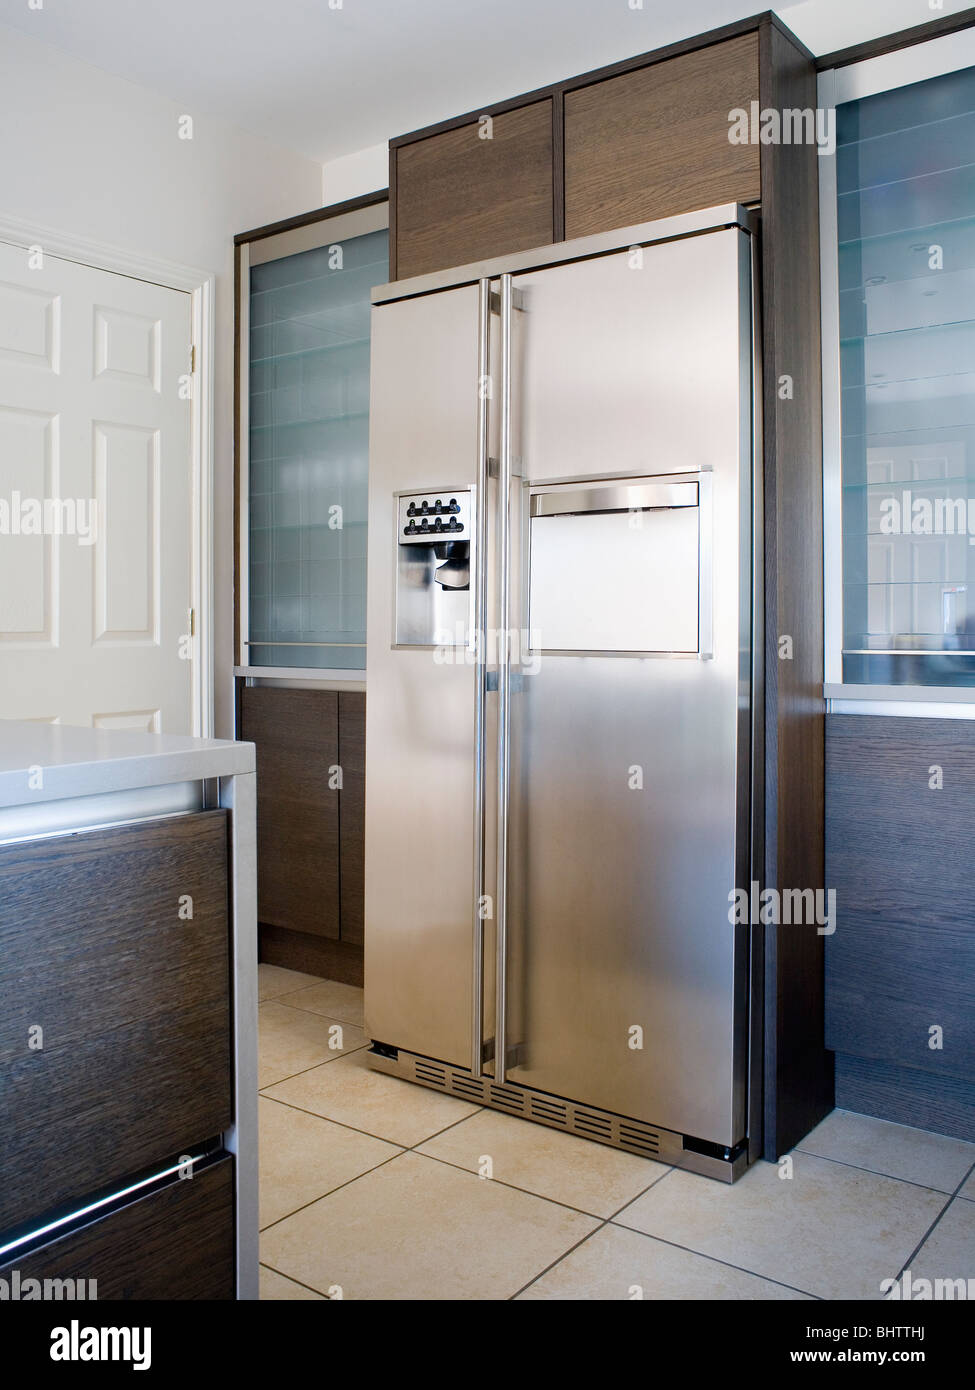 large american style stainless steel fridge freezer in modern kitchen stock photo 28205678 alamy. Black Bedroom Furniture Sets. Home Design Ideas